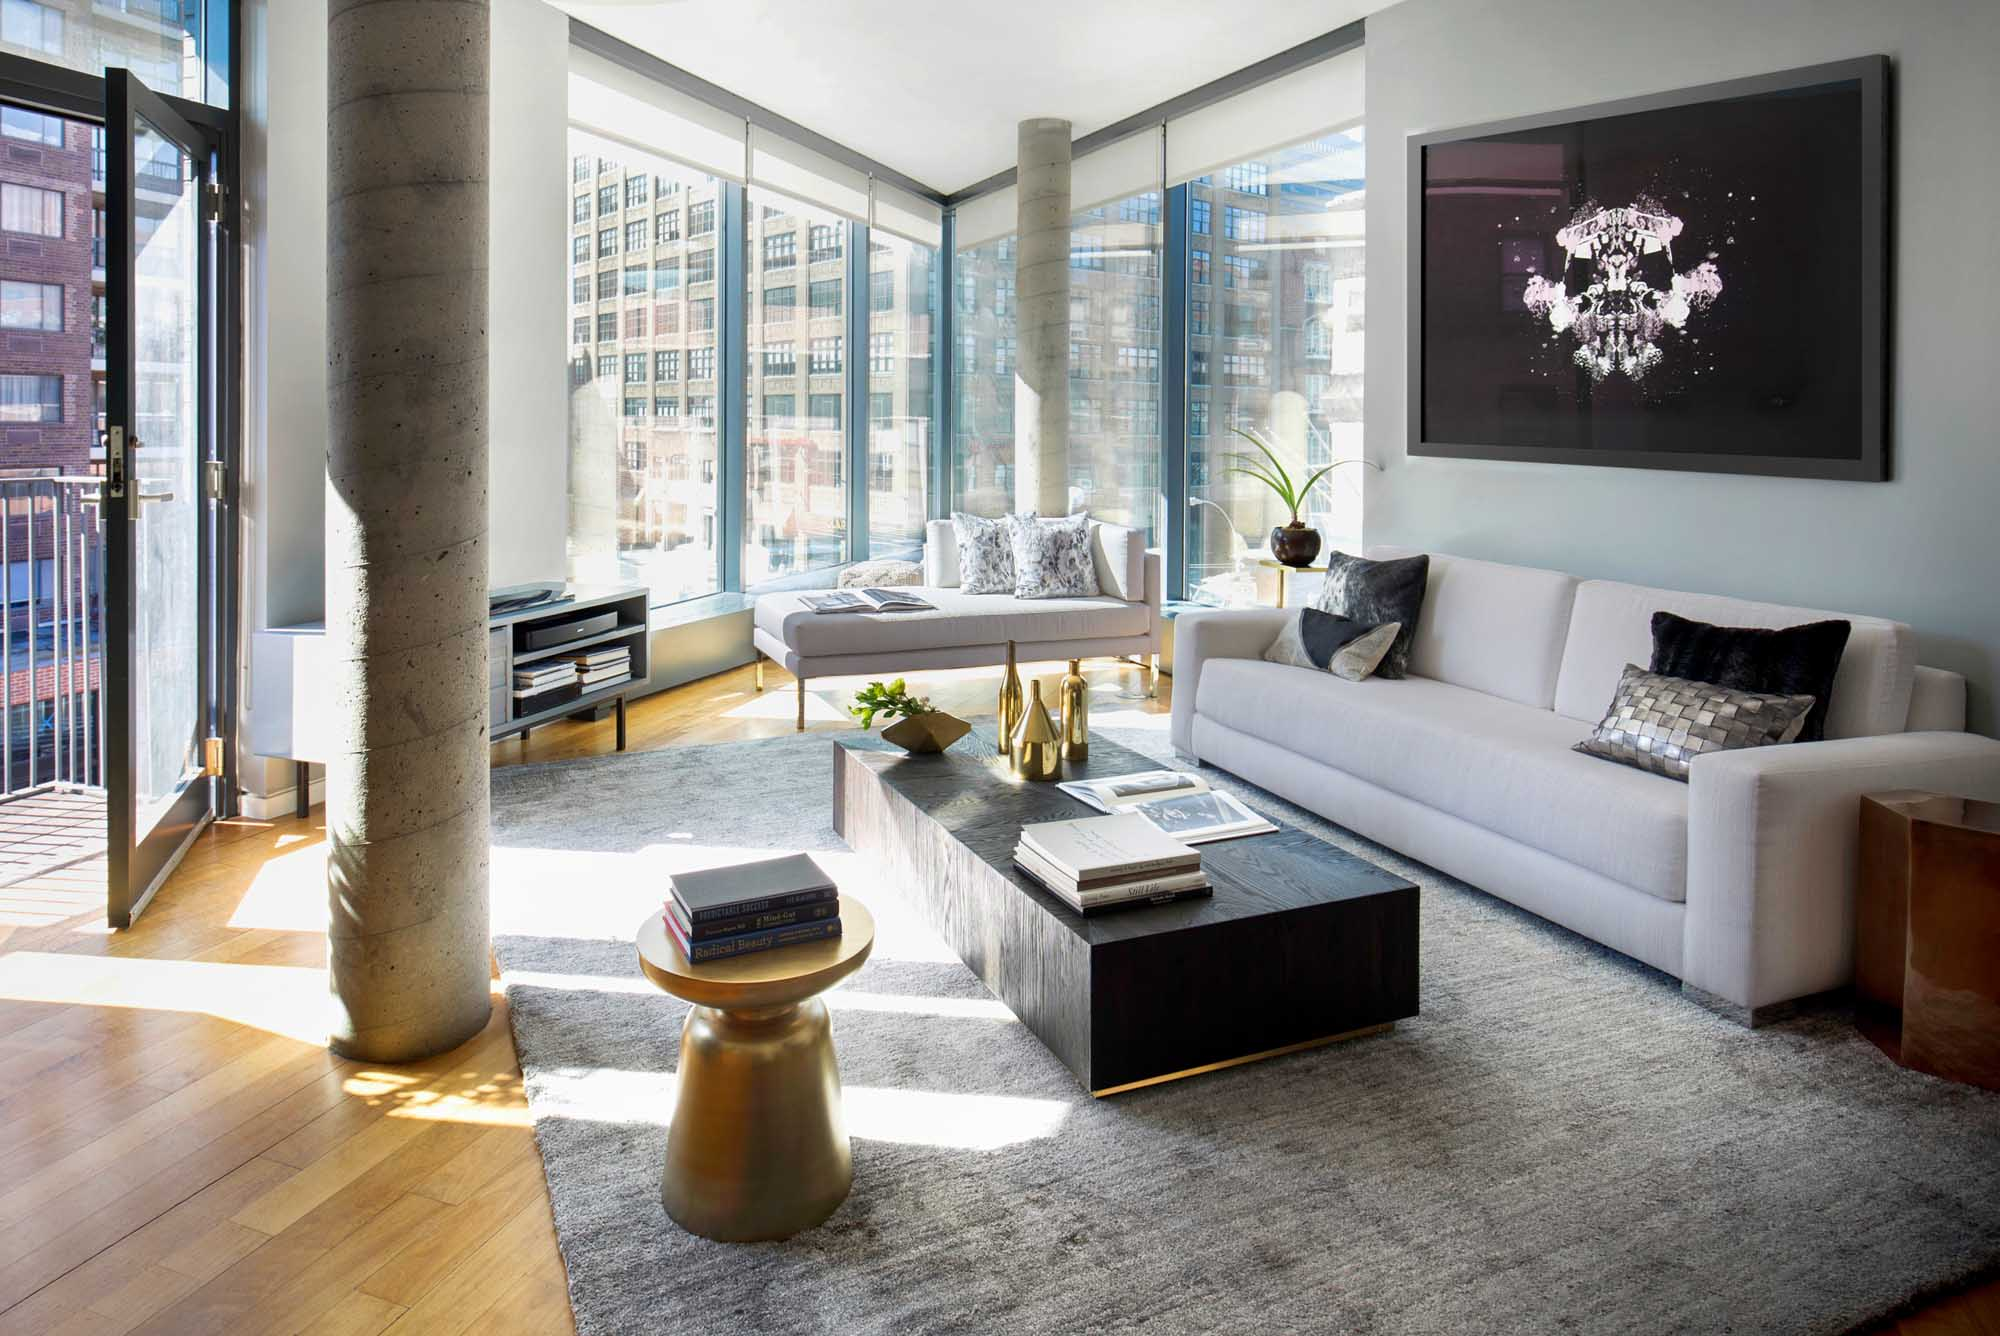 spacious modern living area with stylish black and white pillows on the white sofa, large wooden center table, carpeted floor and wide glass walls overlooking outside